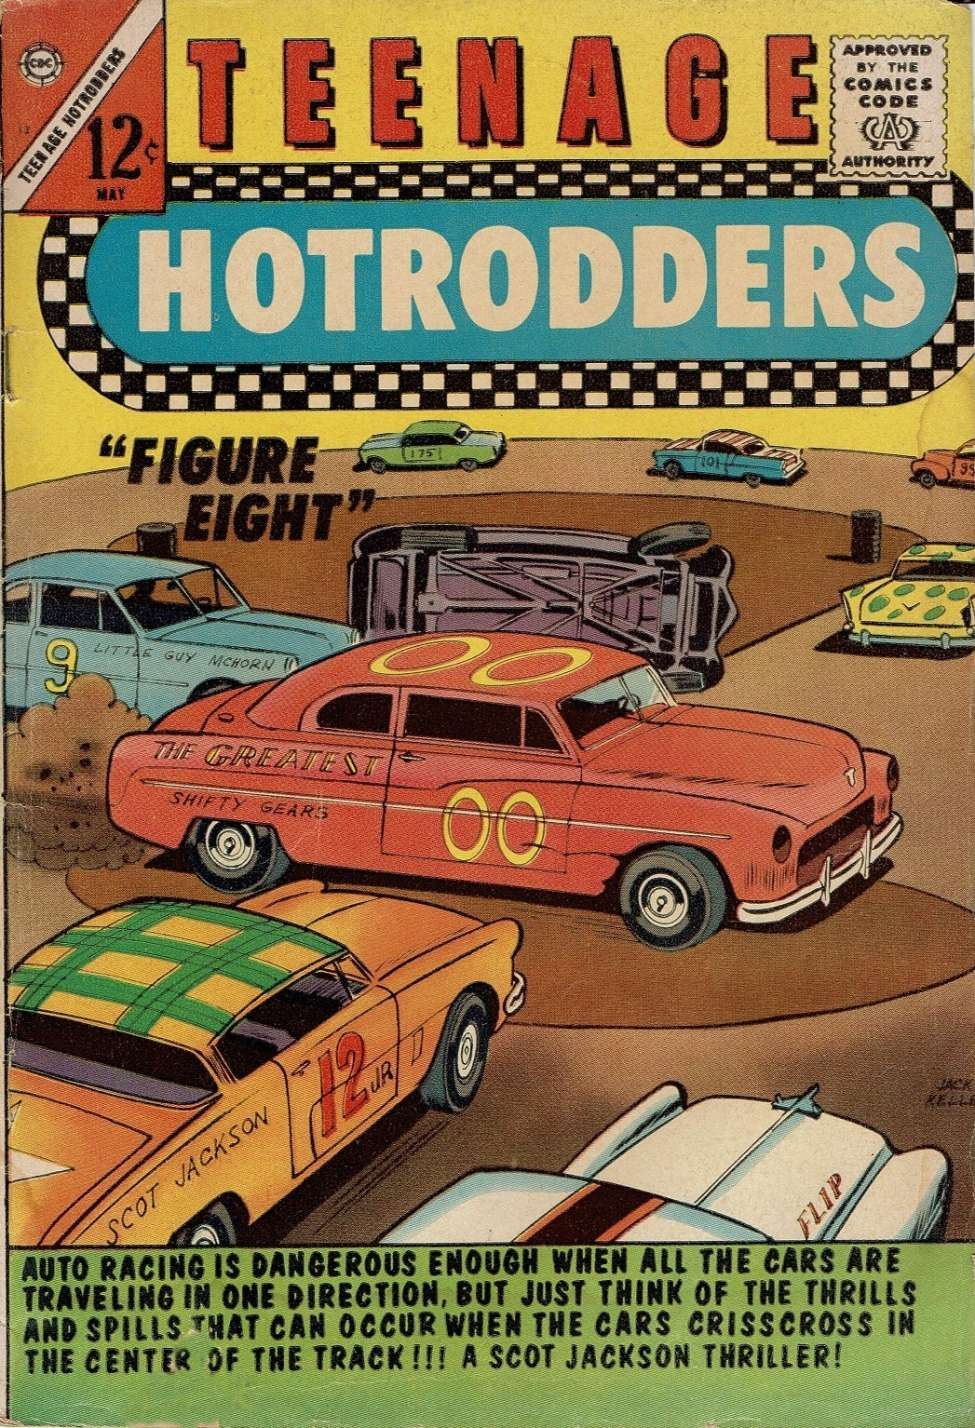 Teenage Hotrodders #12 (Charlton) - Comic Book Plus